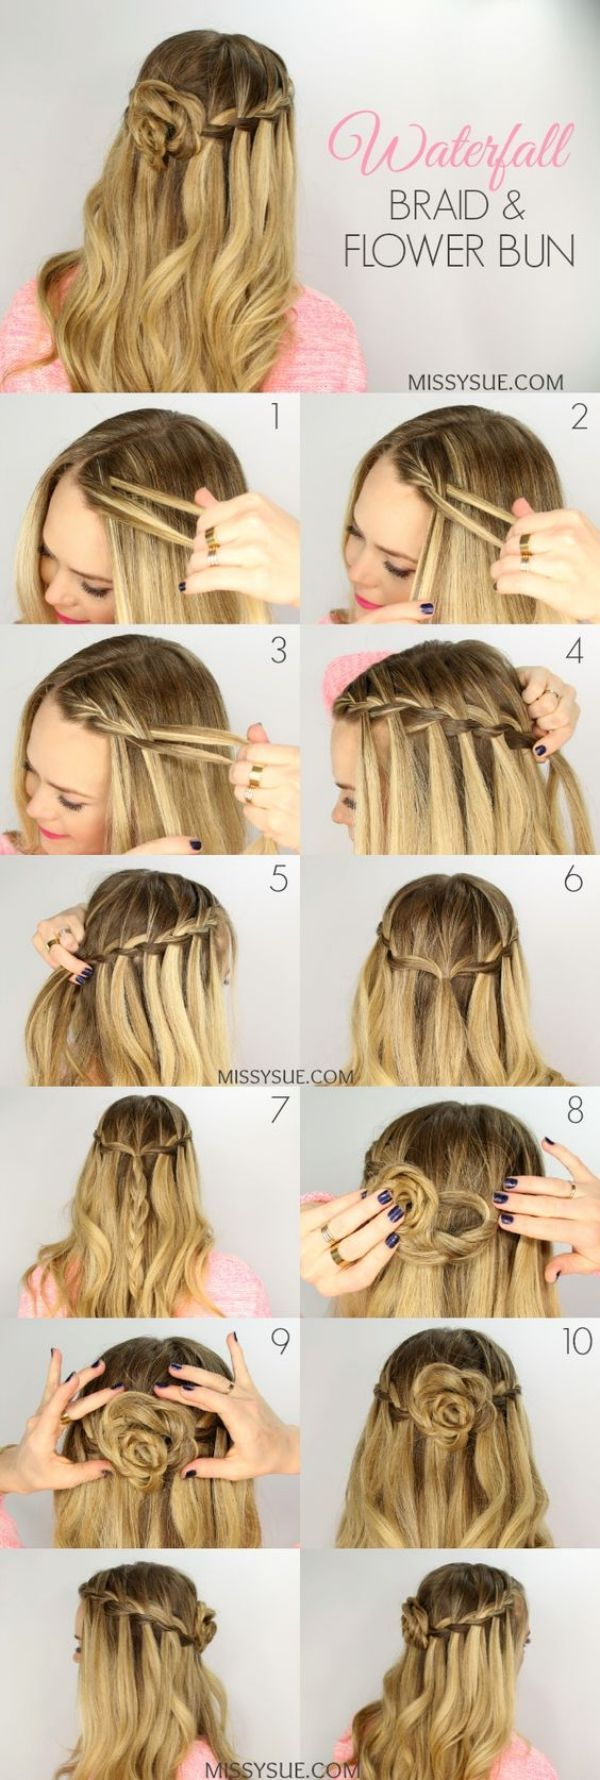 5 Braid Hairstyles to Try this Summer (With Tutorial)